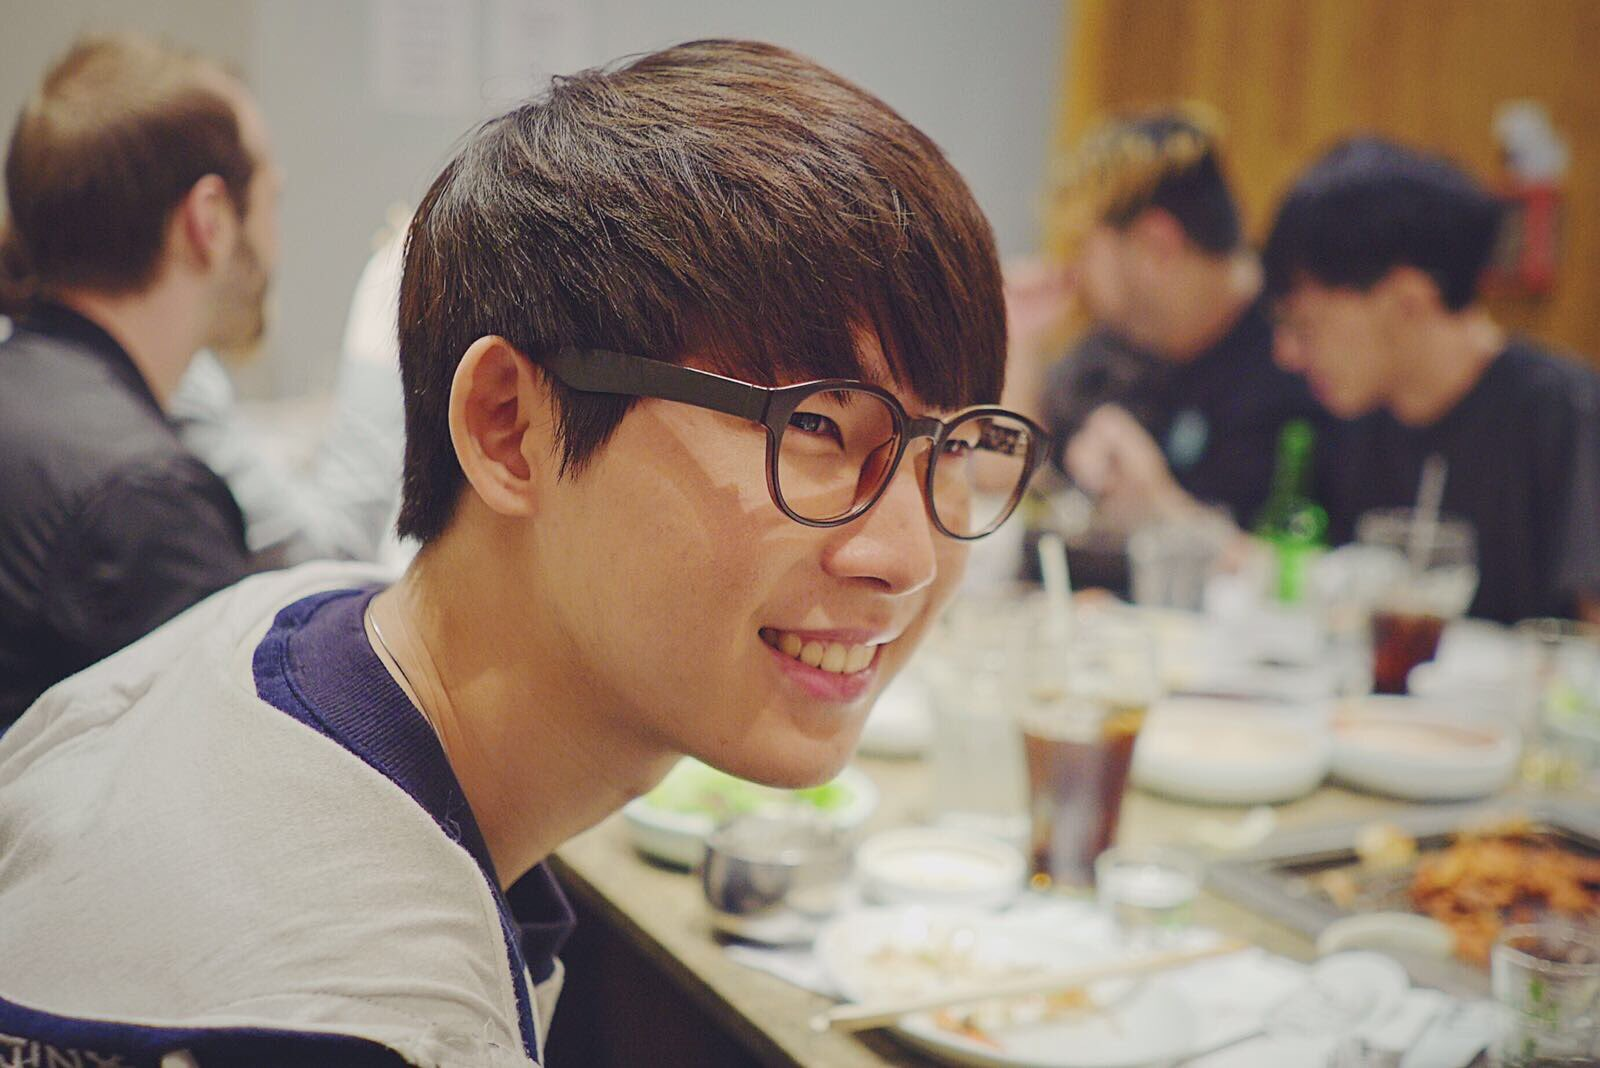 League of Legends pro jungler Reignover image via Twitter